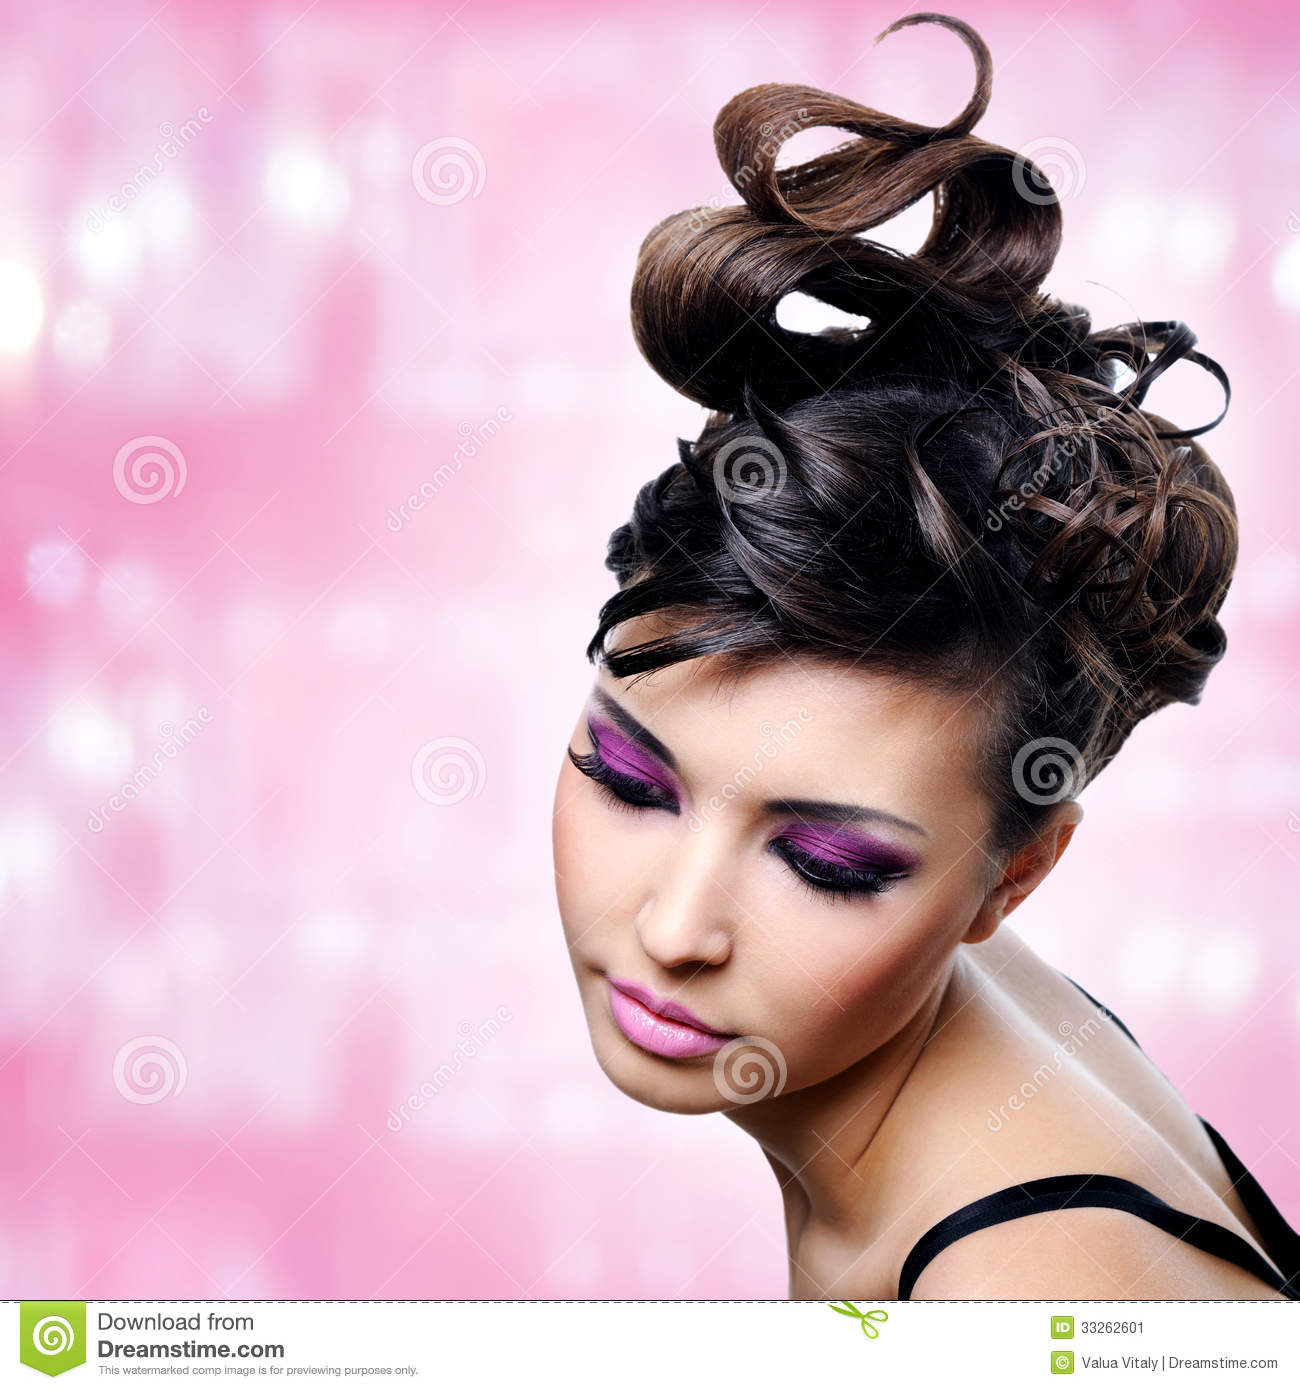 Face of beautiful woman with fashion hairstyle and glamour makeup